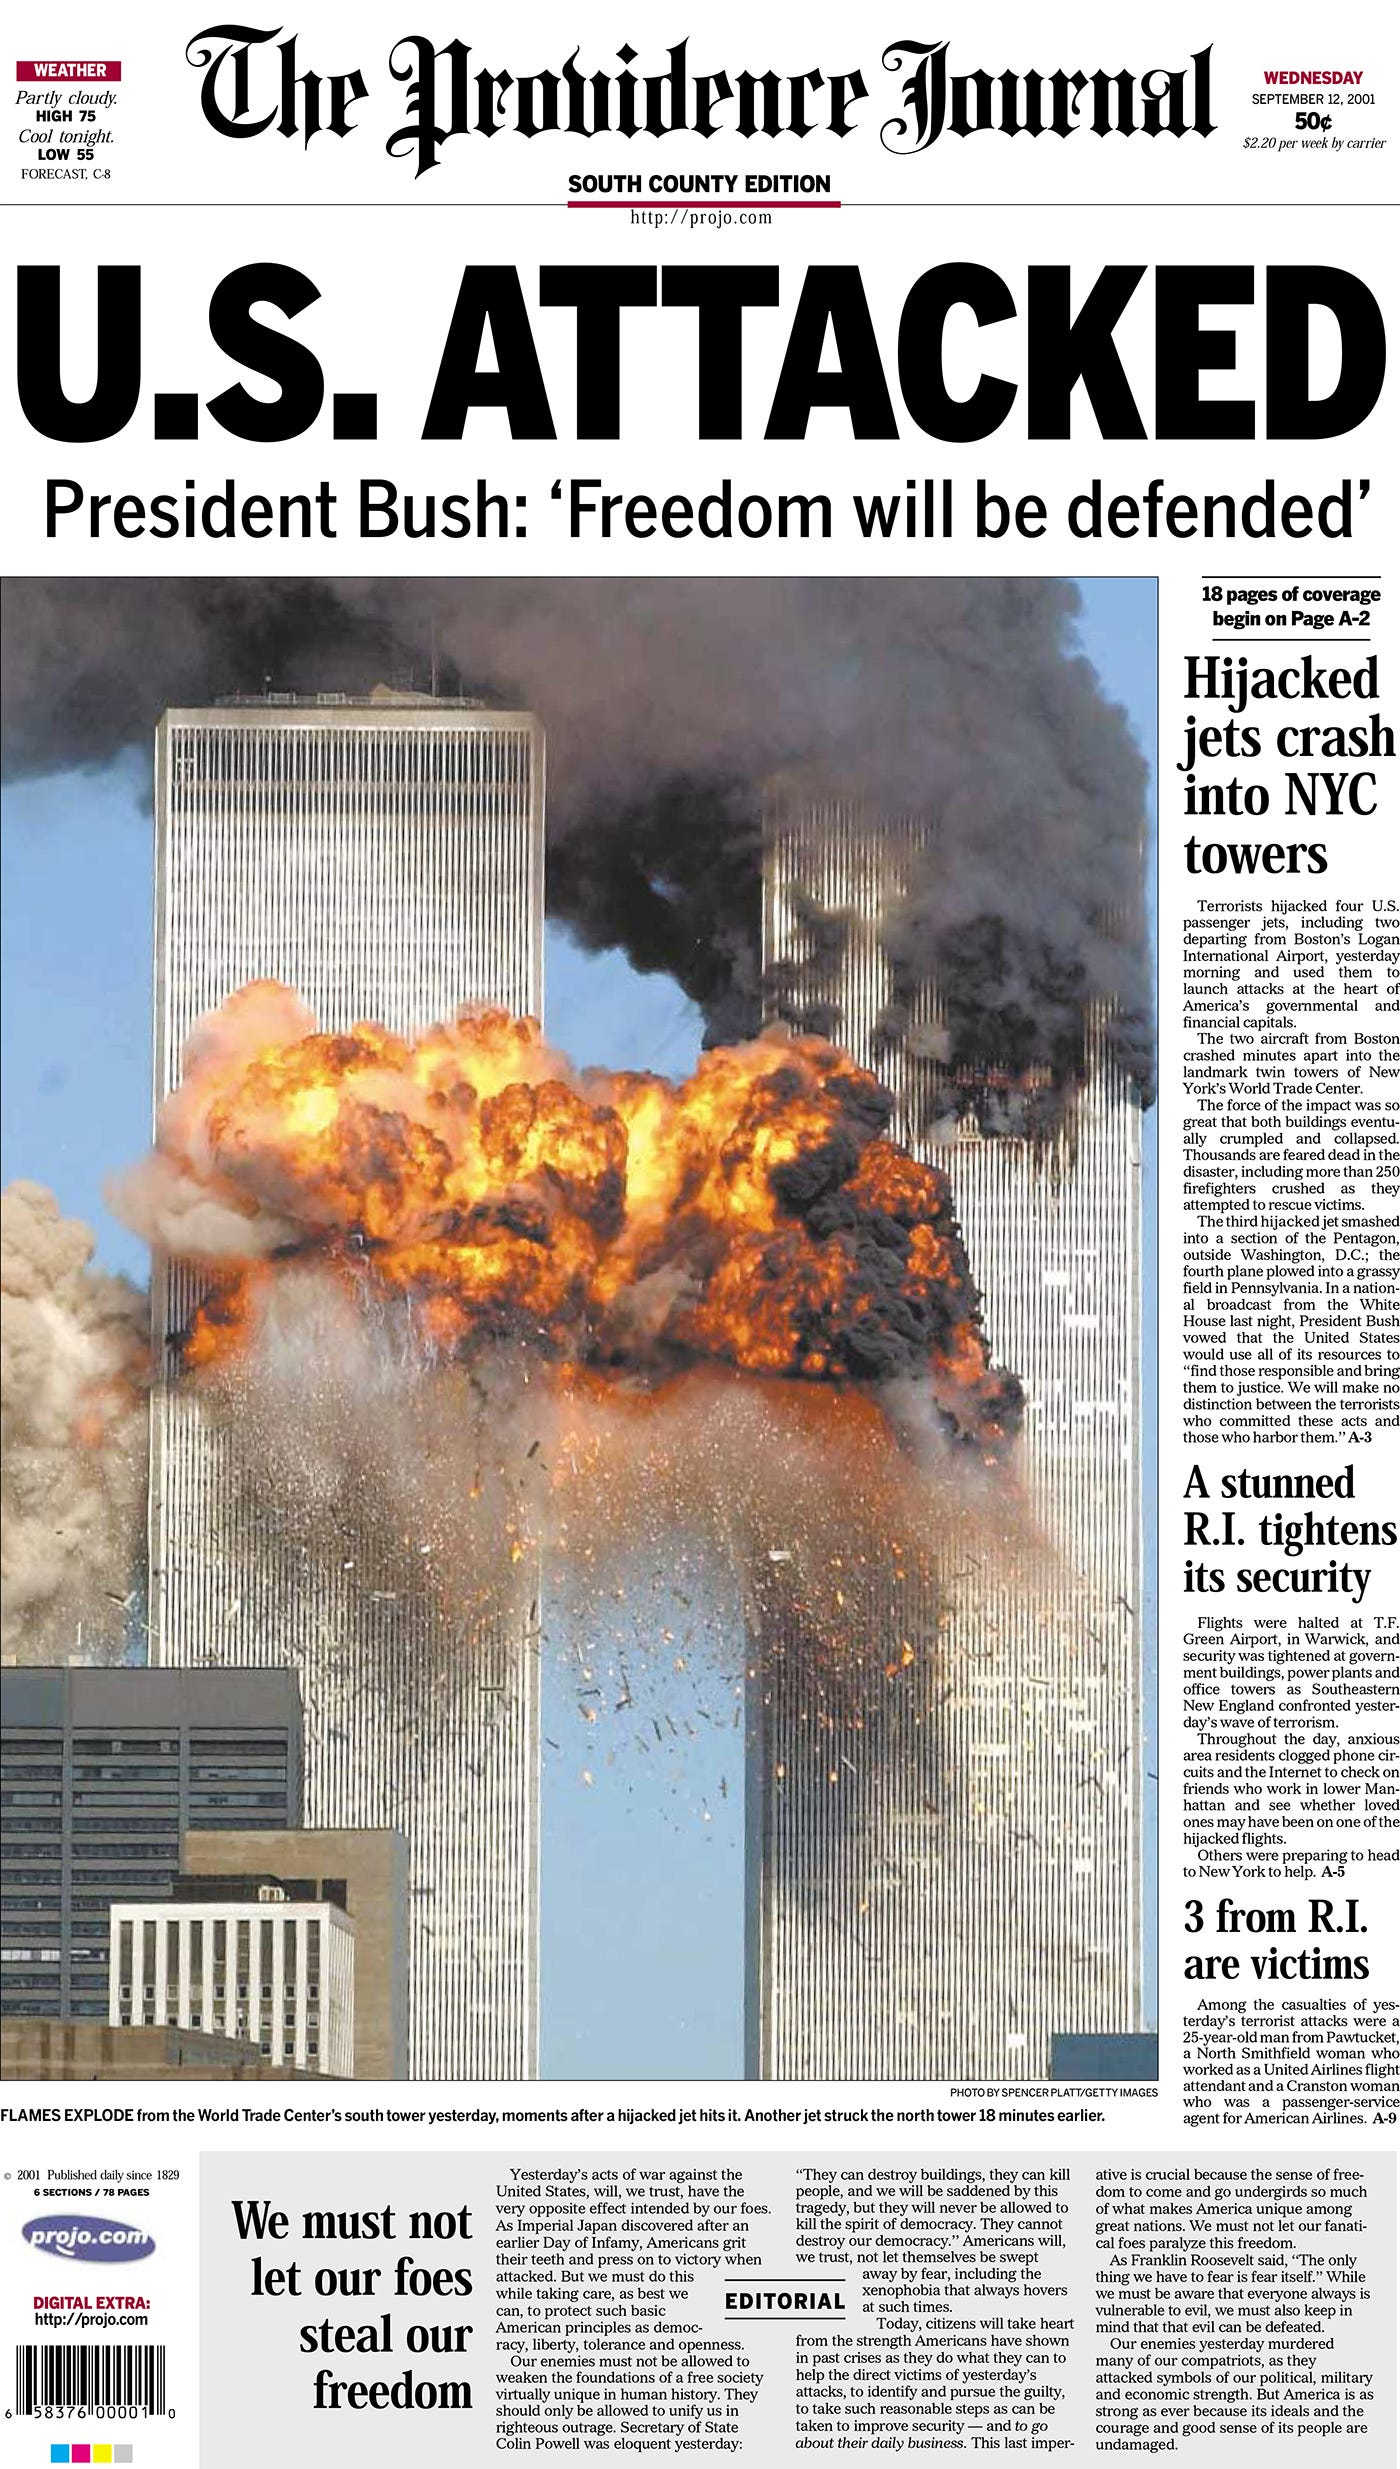 Providence Journal page one on Sept. 12, 2001